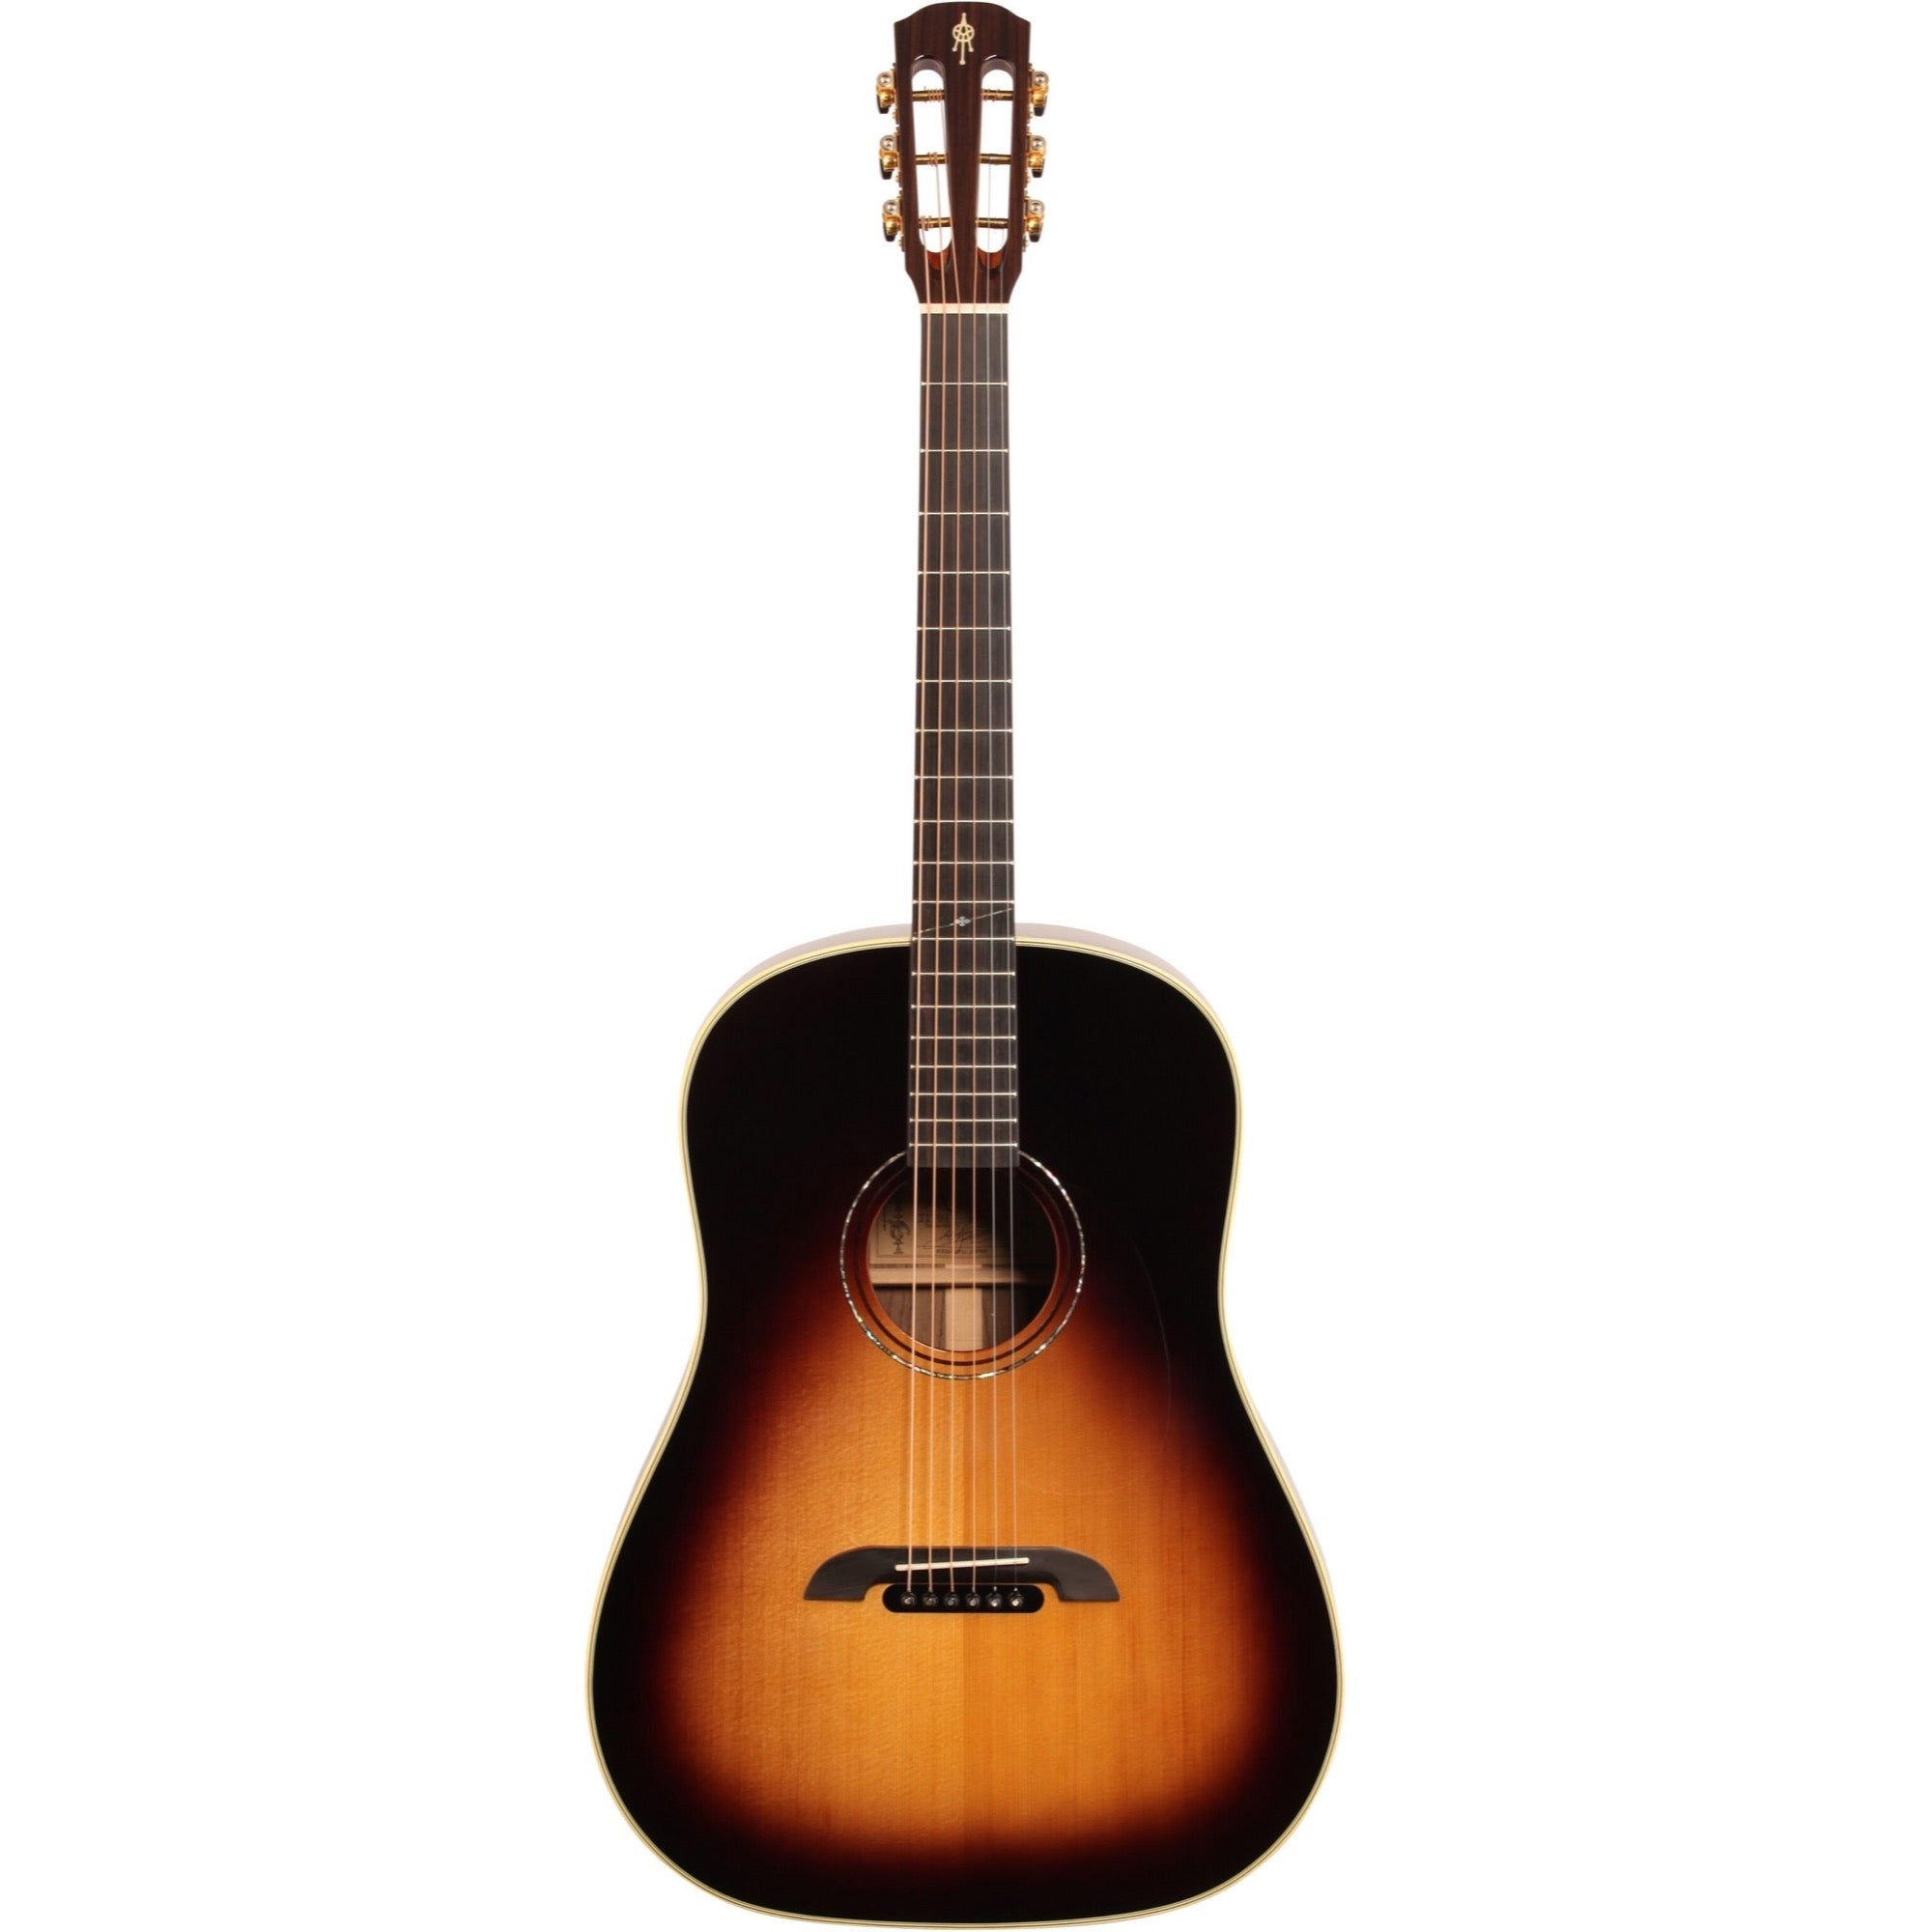 Alvarez Yairi DYMR70 Masterworks Dreadnought Acoustic Guitar (with Case), Sunburst